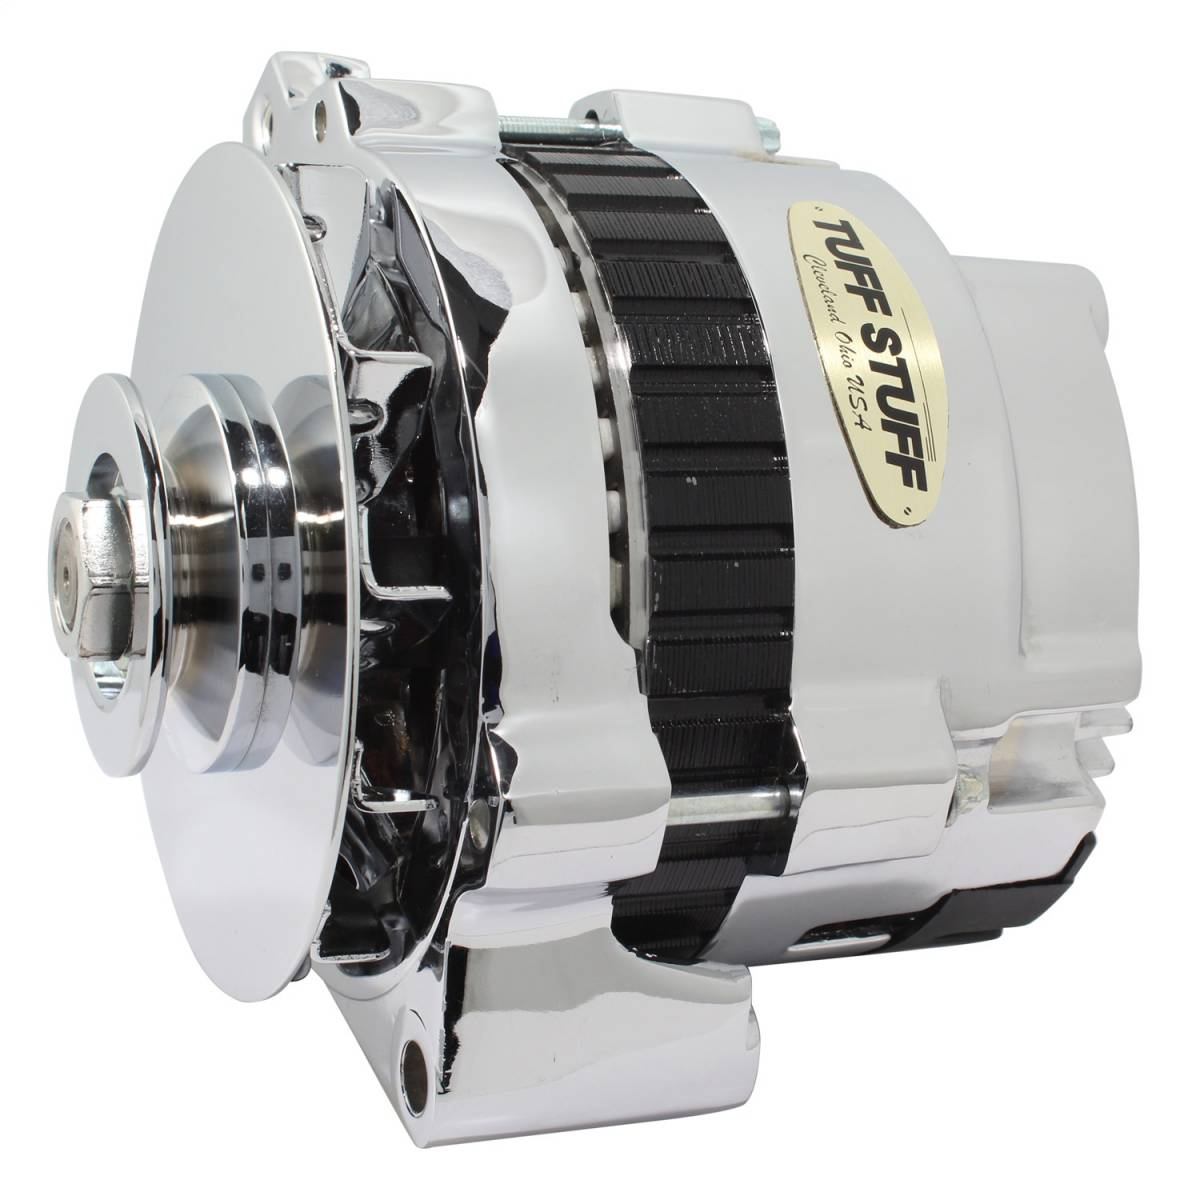 Tuff Stuff Performance - Alternator 160 AMP 1 Wire Or OEM V Groove Pulley 6.125 in. Bolt To Bolt Chrome 7866F